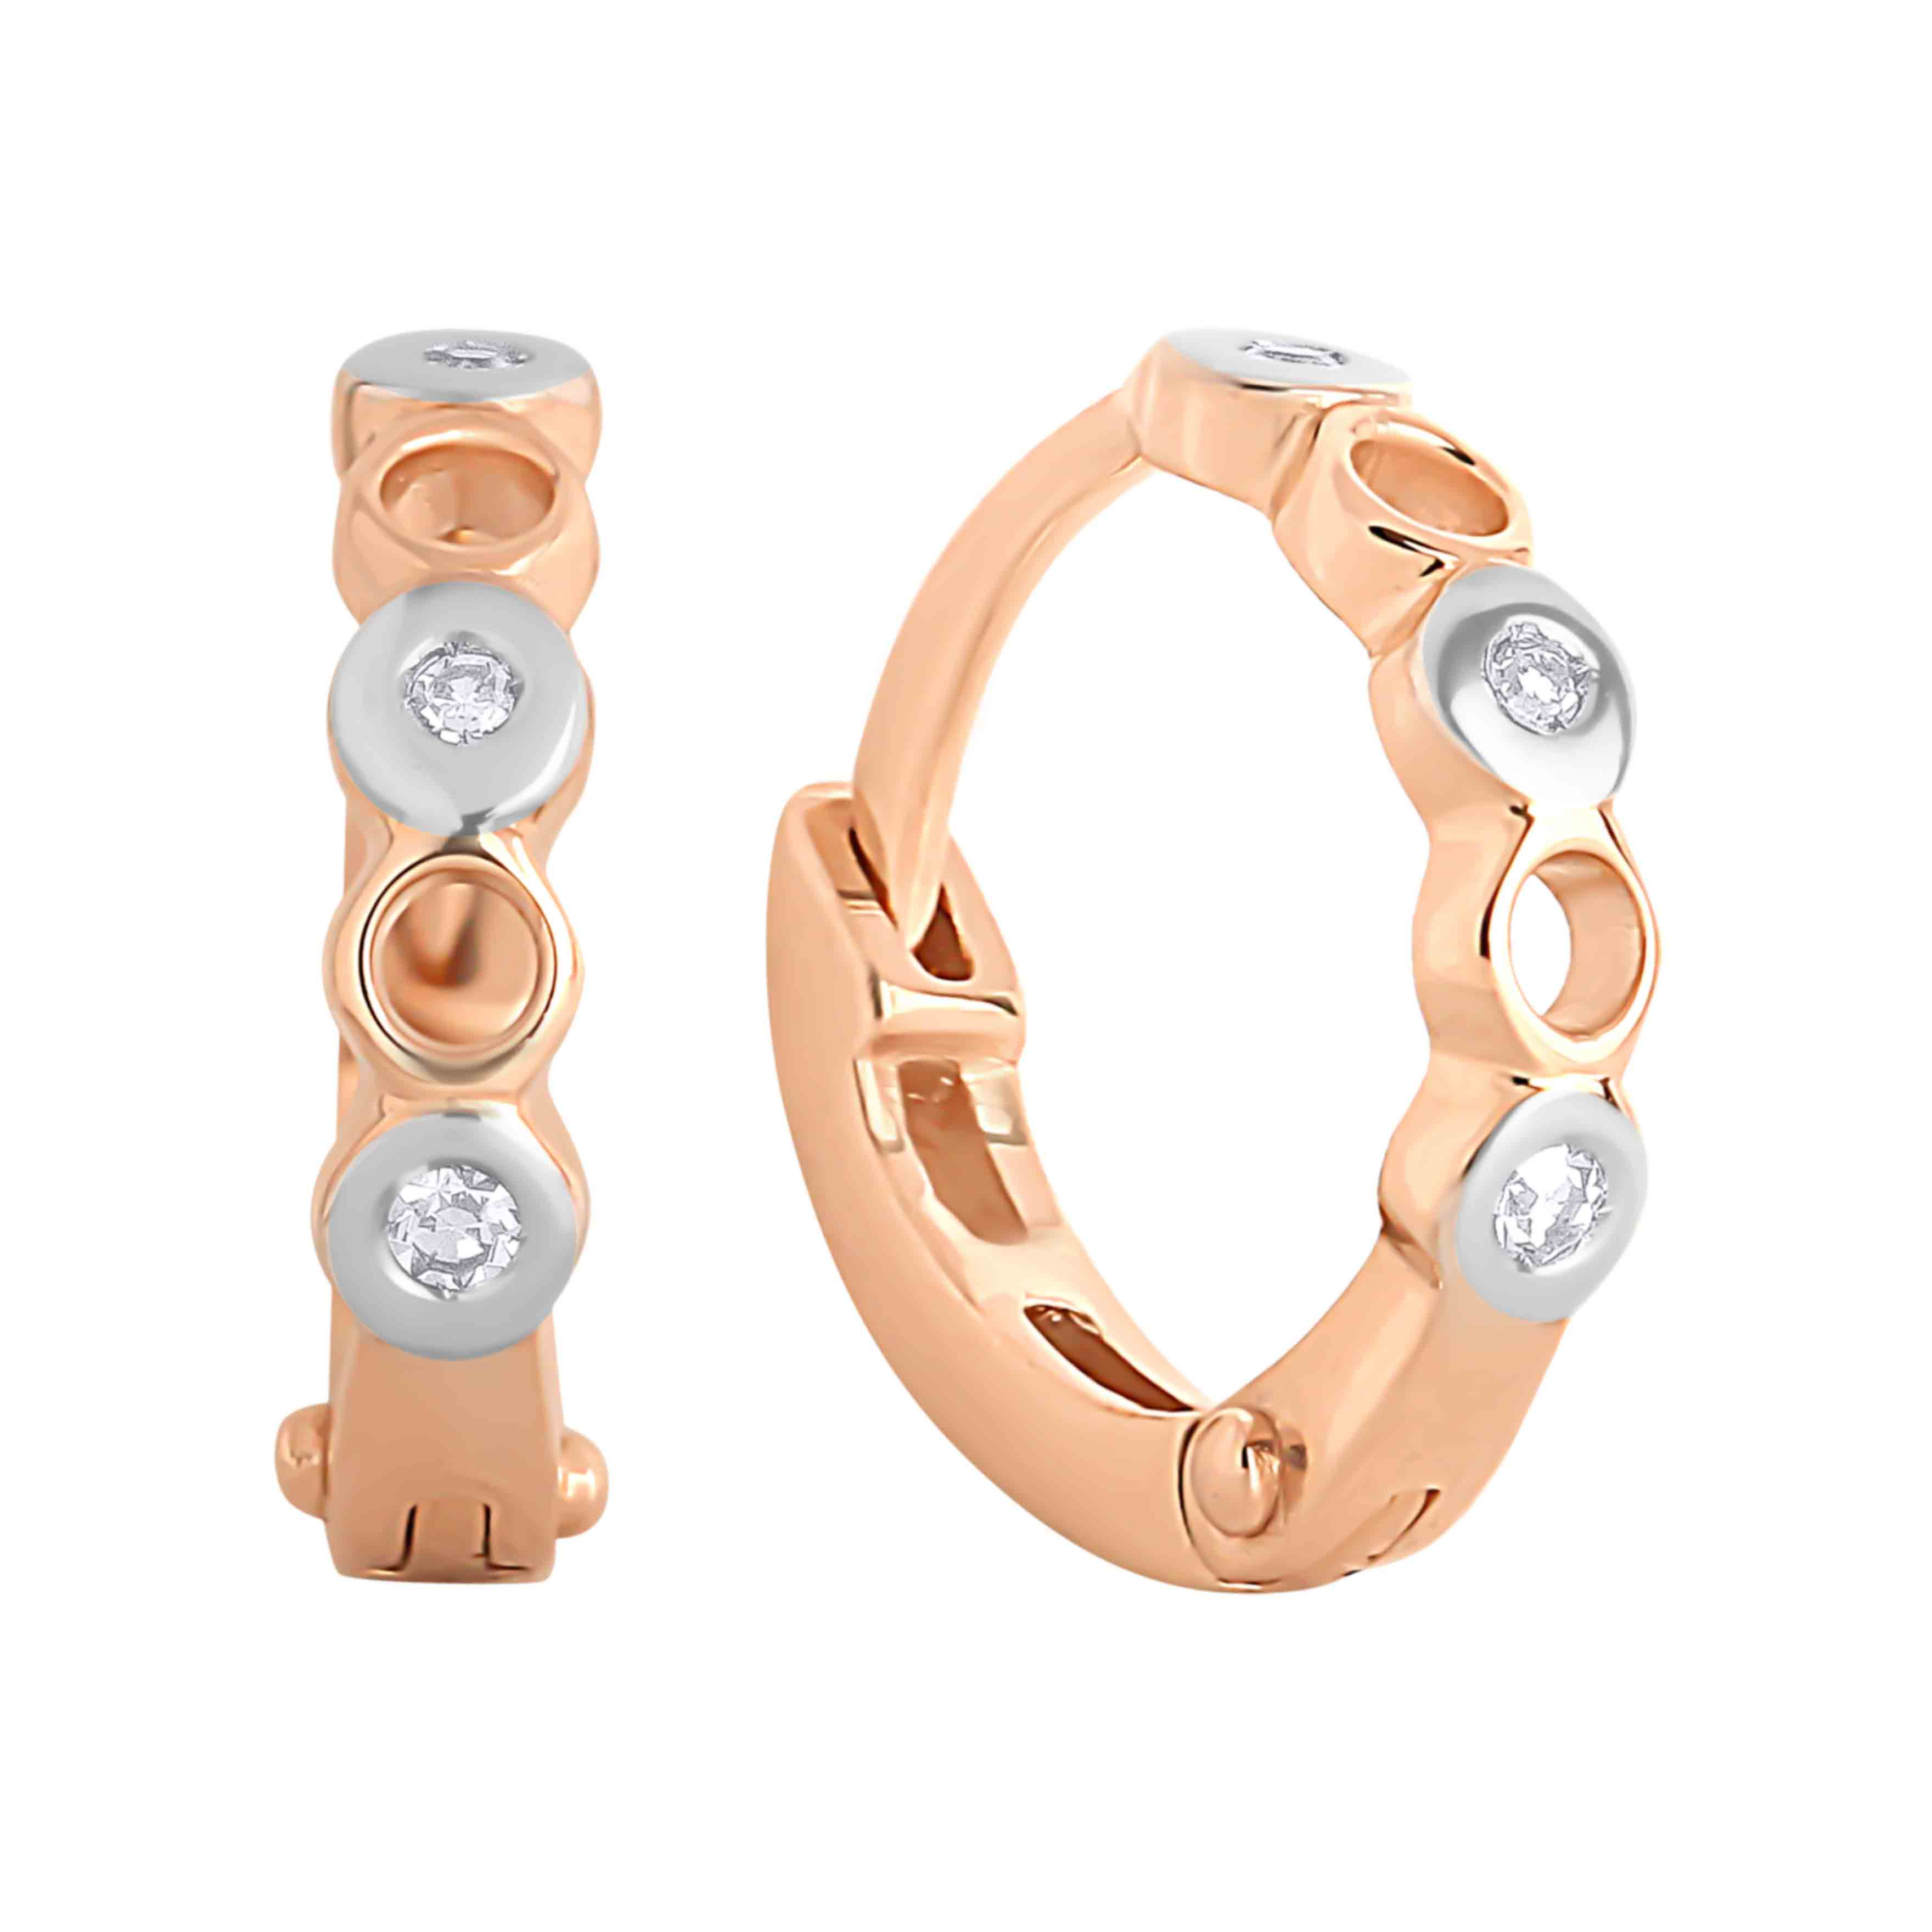 Bezel-set Diamond Huggie Earrings for Babies